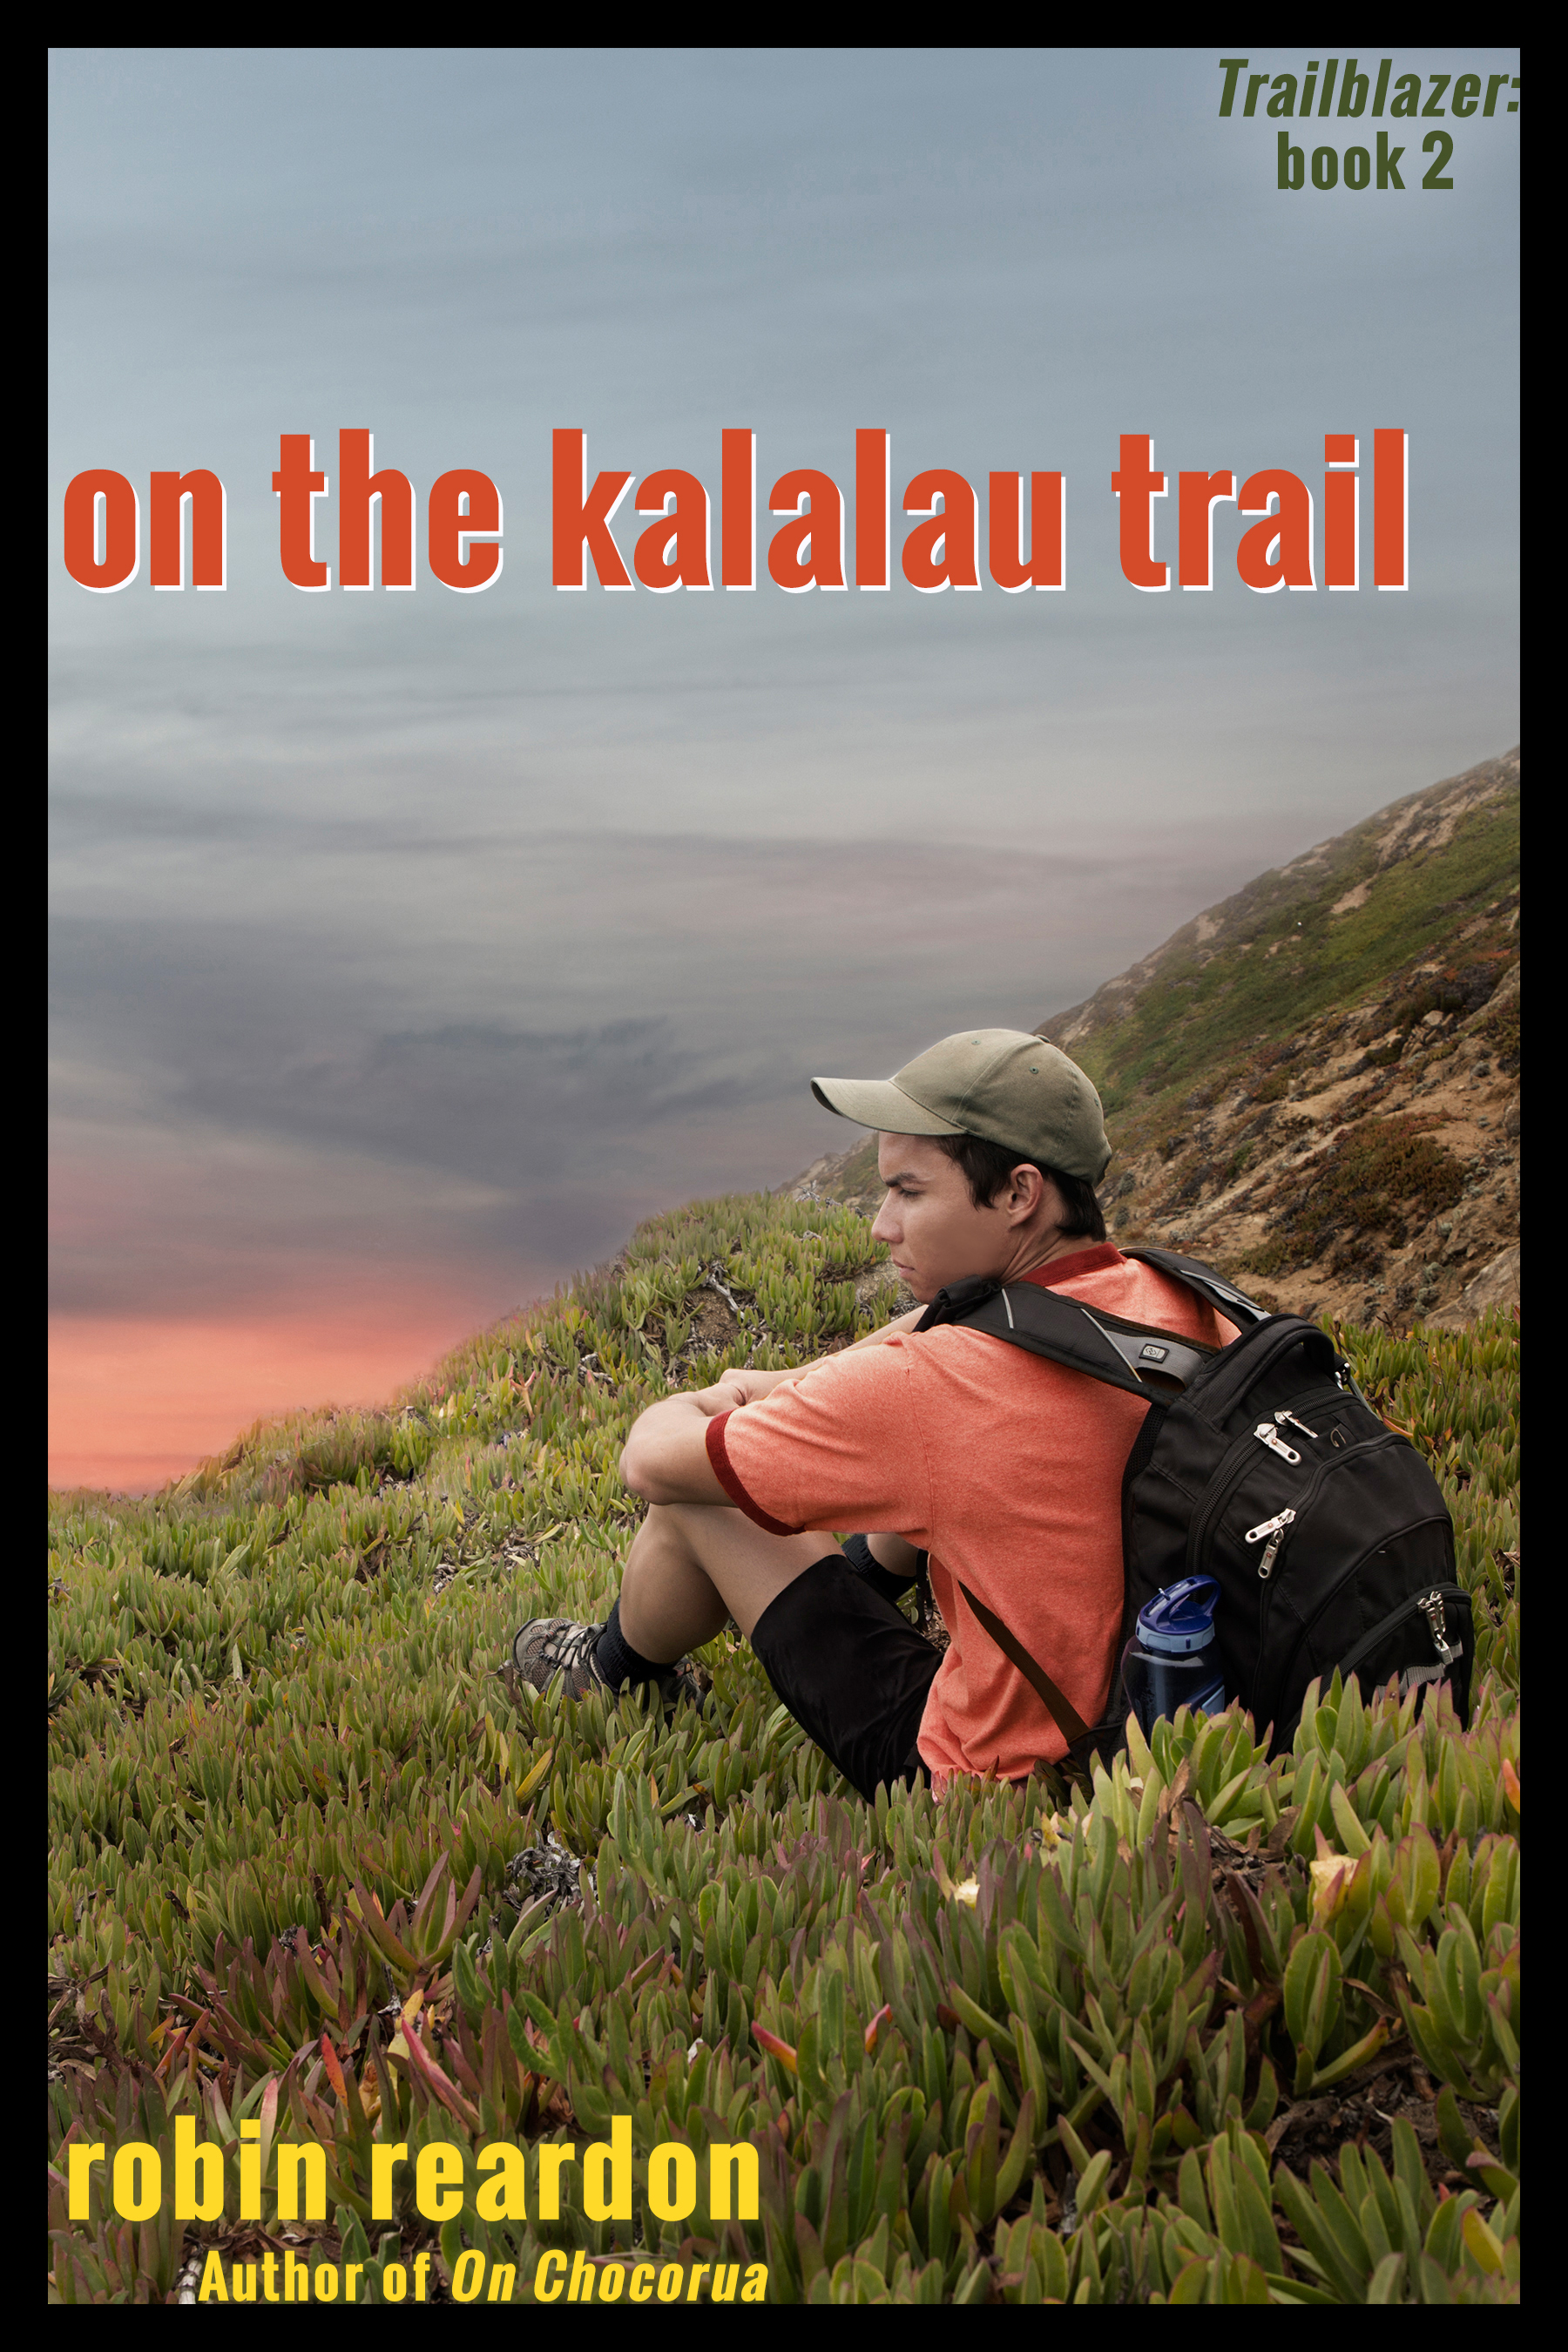 On_the_Kalalau_Trail_FRAME.jpg